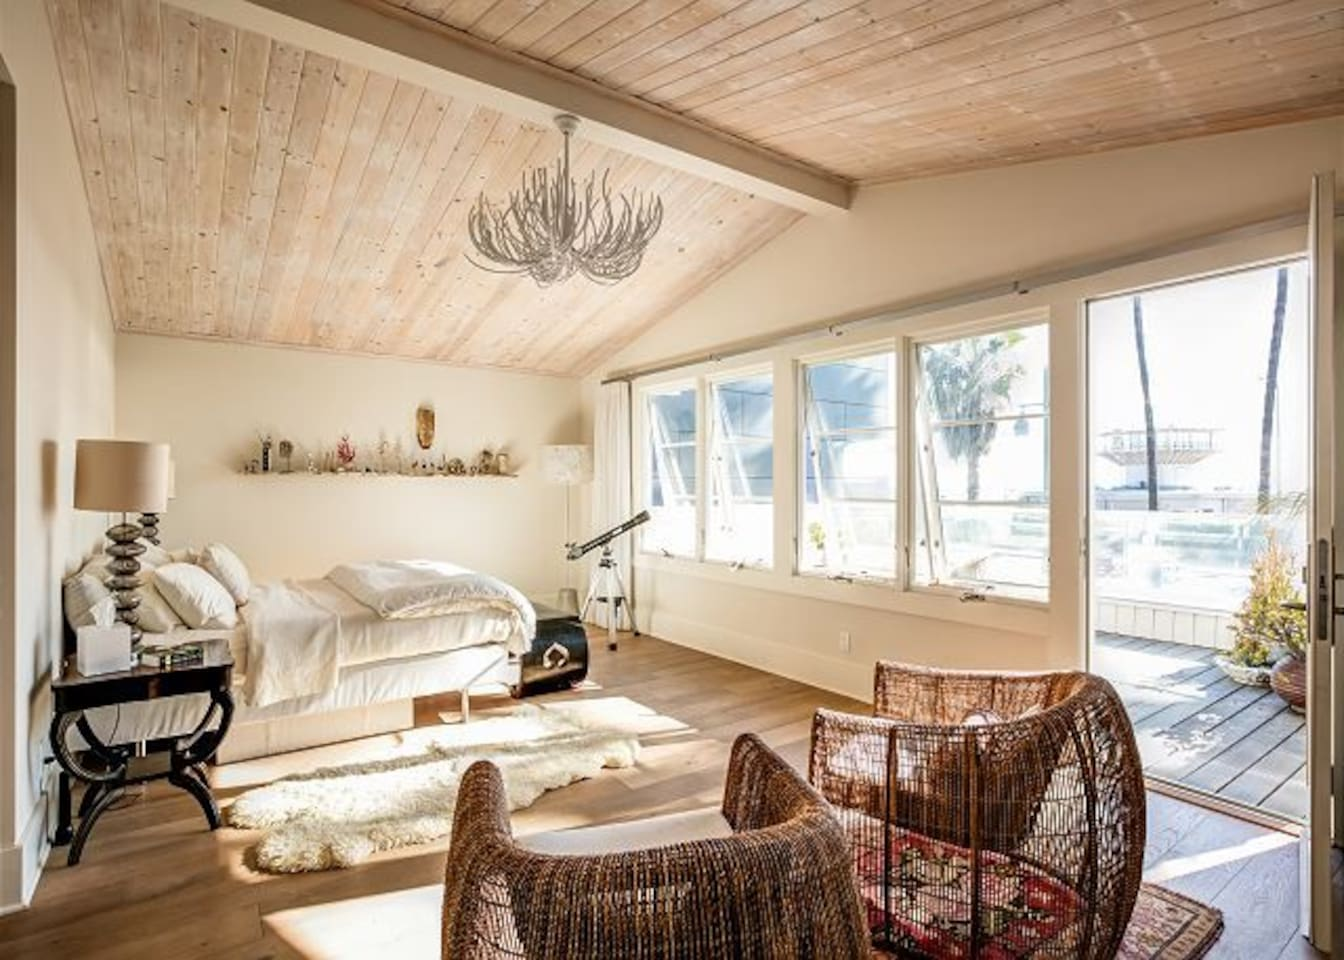 Master bedroom opens onto large deck perfect for watching sunset.